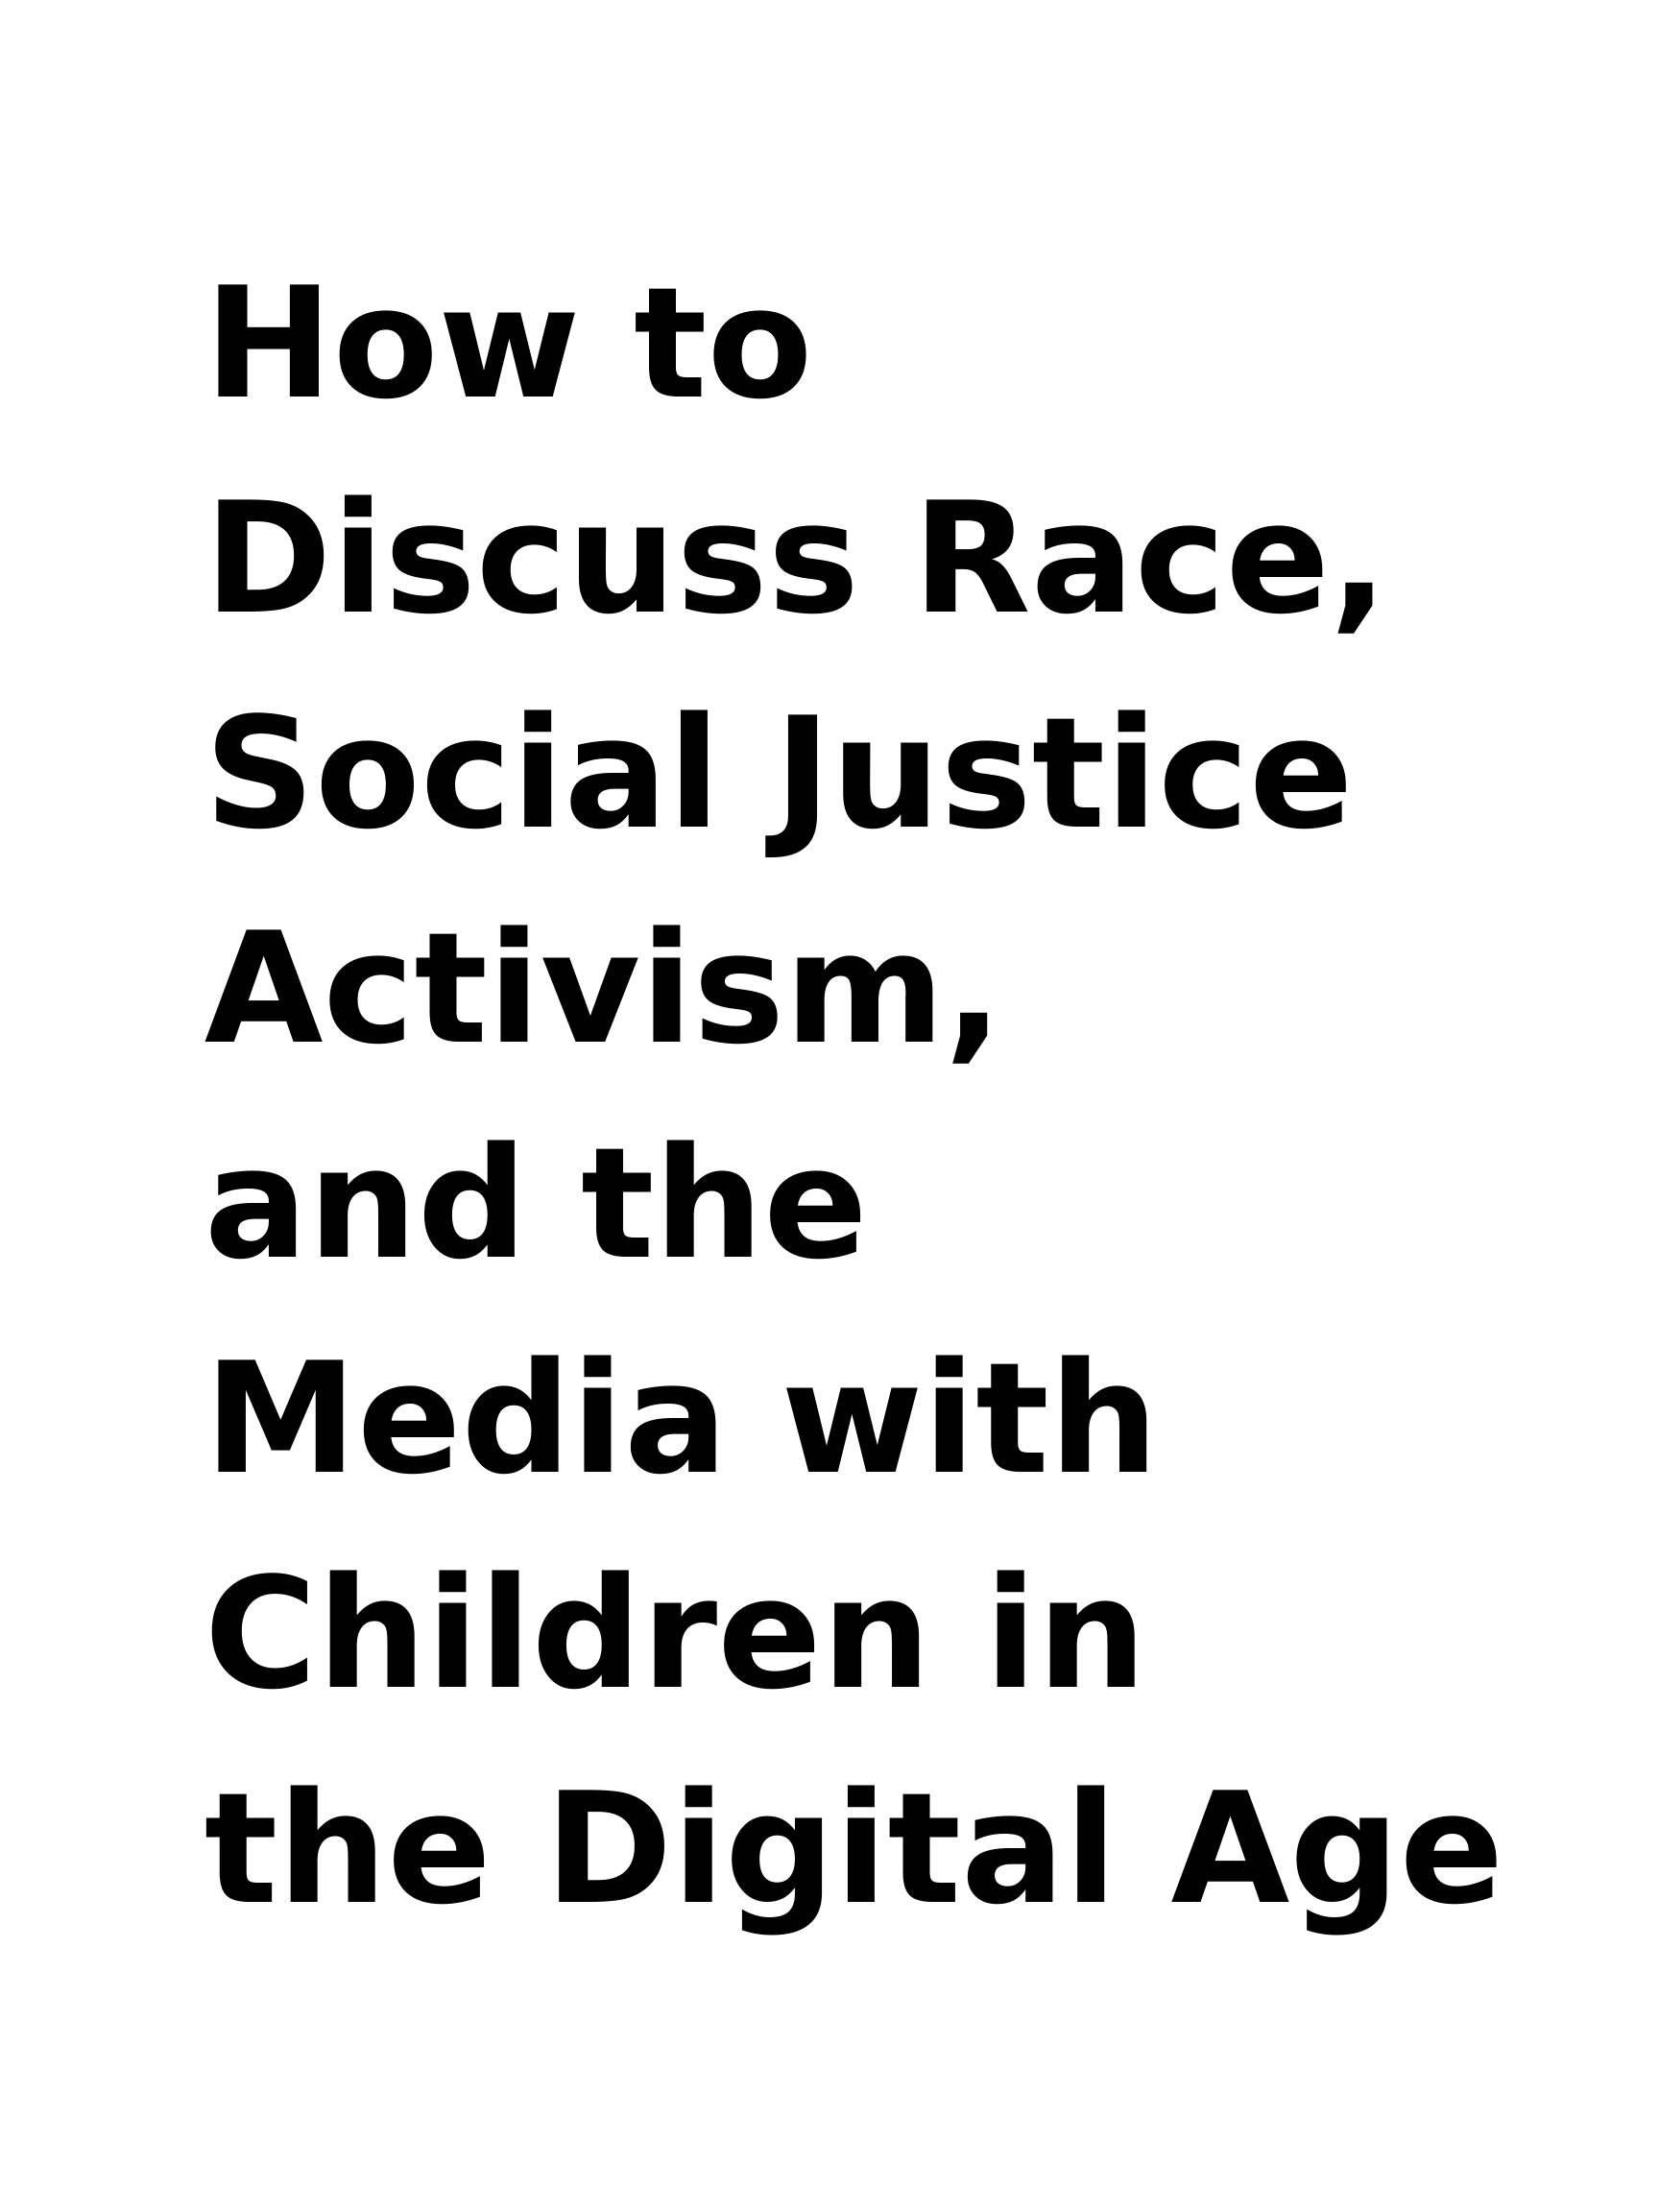 How To Discuss Race, Social Justice Activism, And The Media With Children In The Digital Age